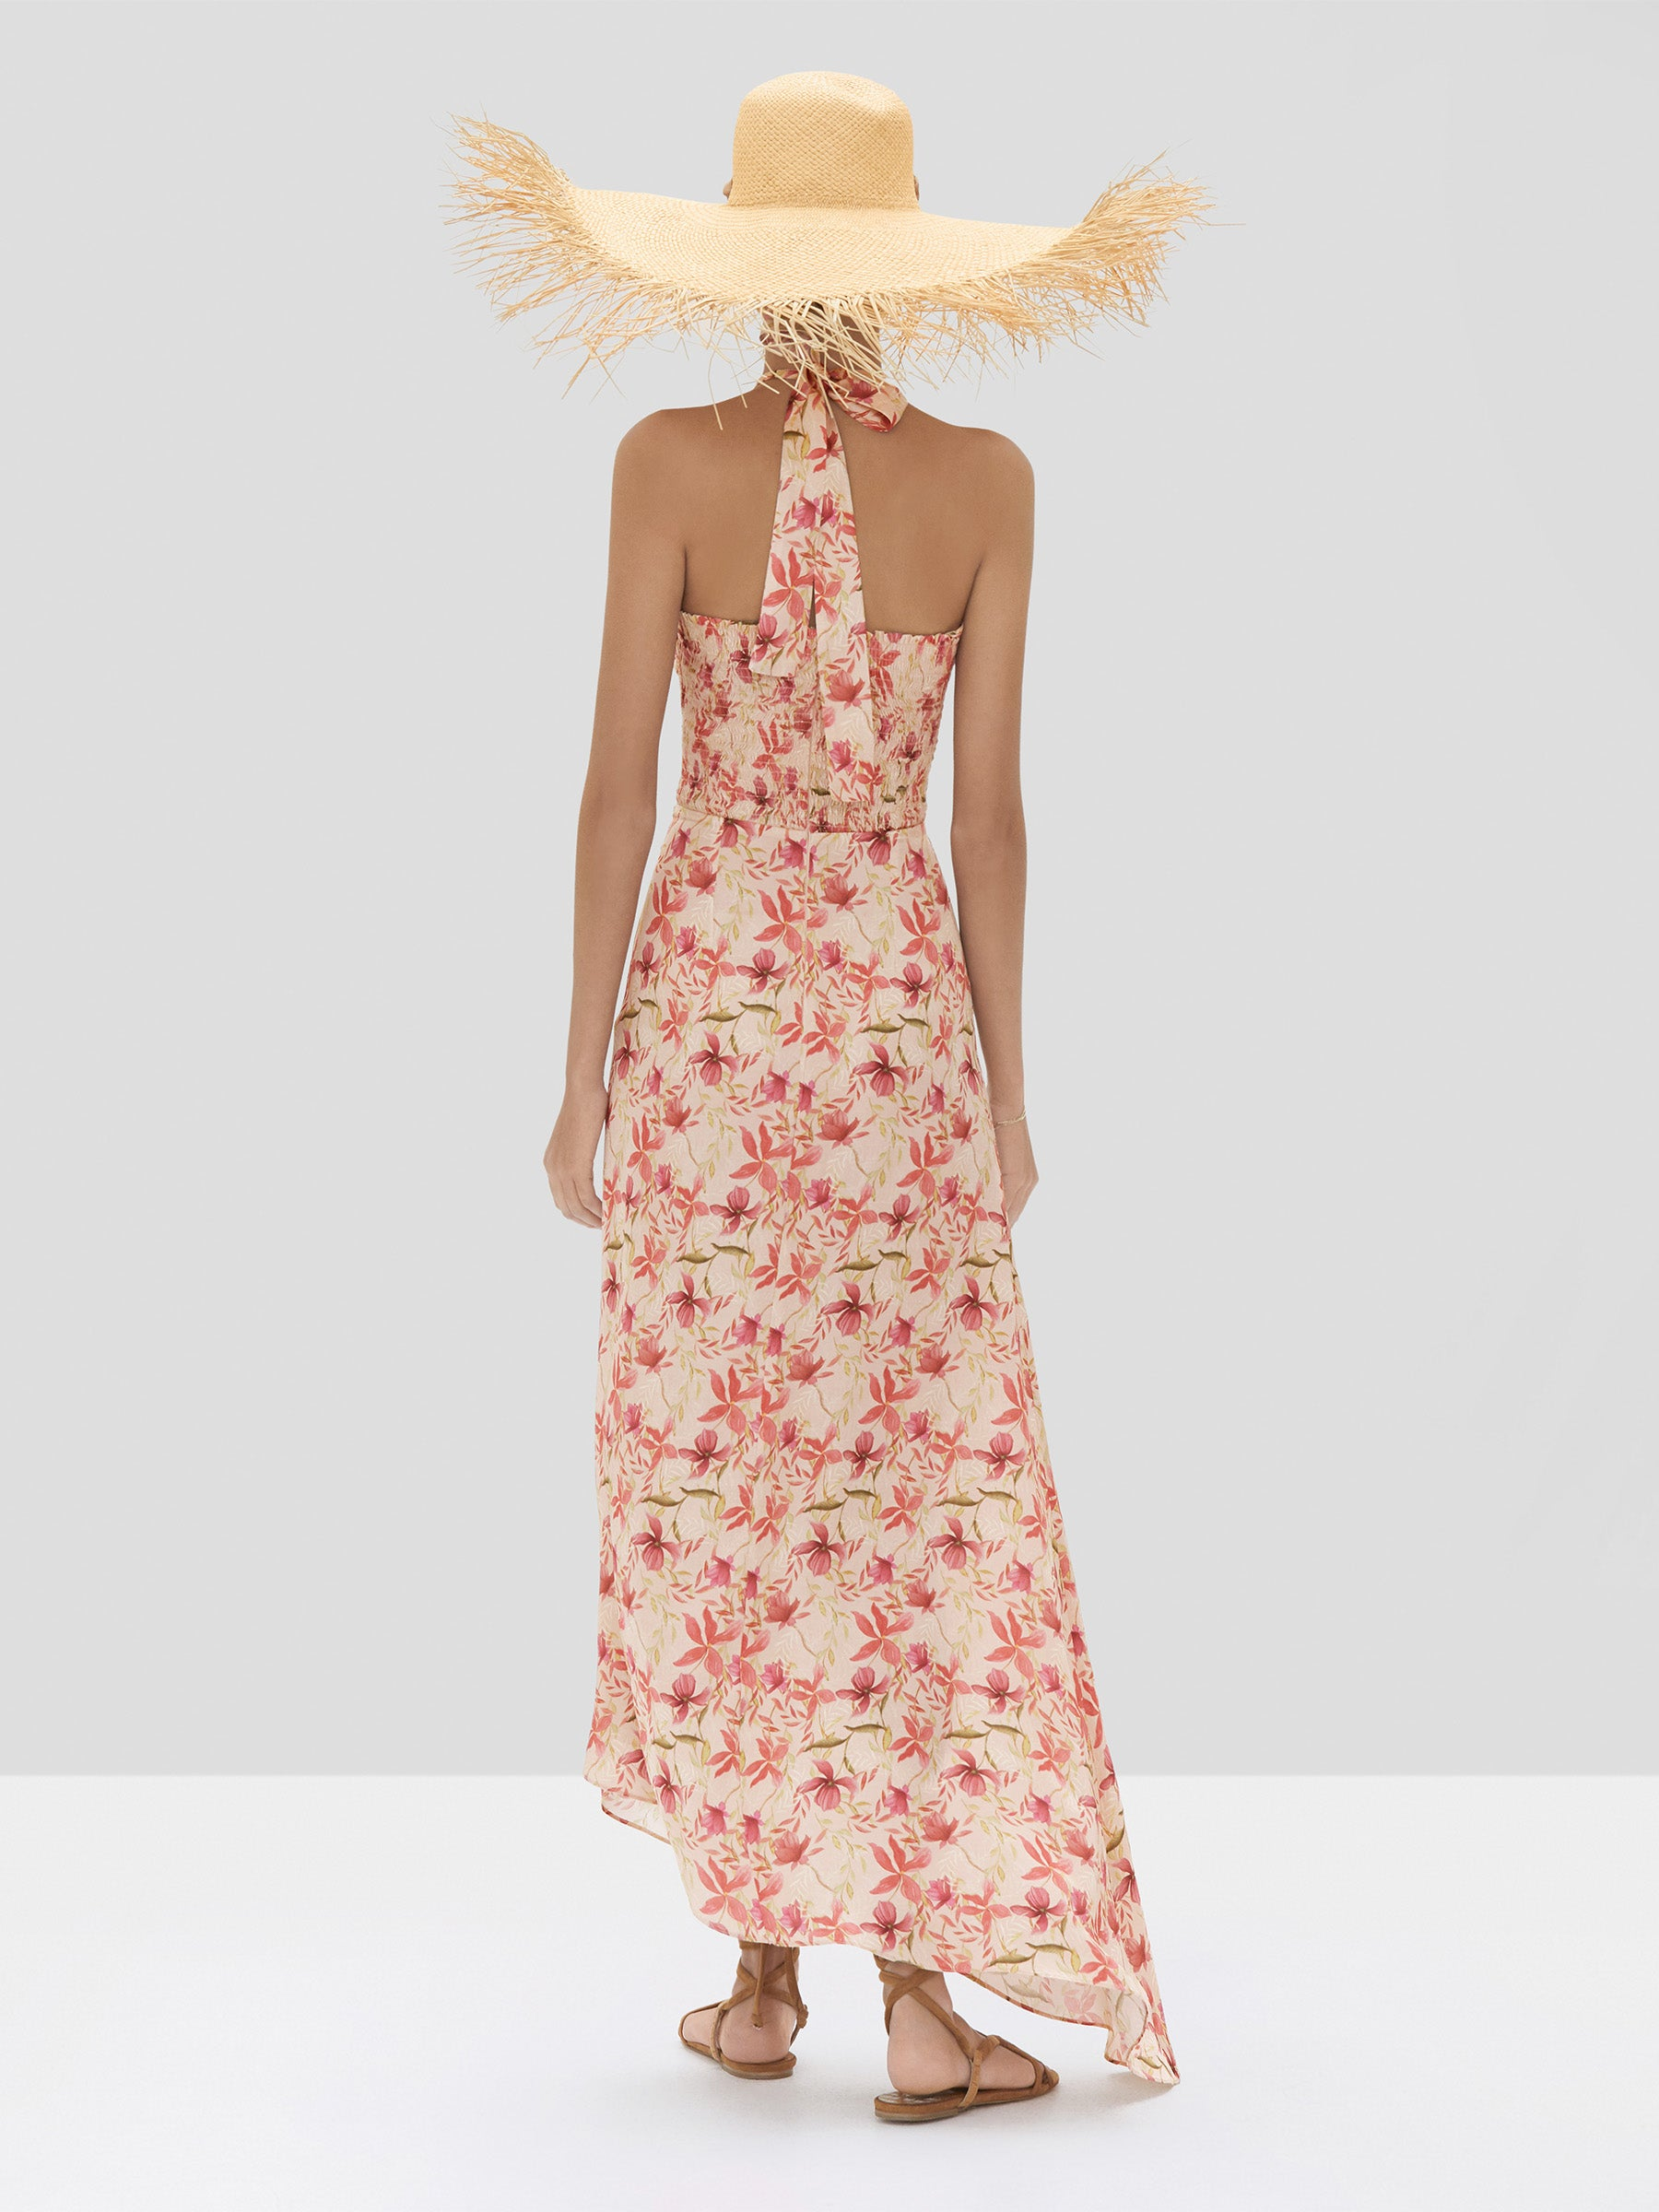 Alexis Tahanie Dress in Wild Orchid Rose from the Spring Summer 2020 Ready To Wear Collection - Rear View